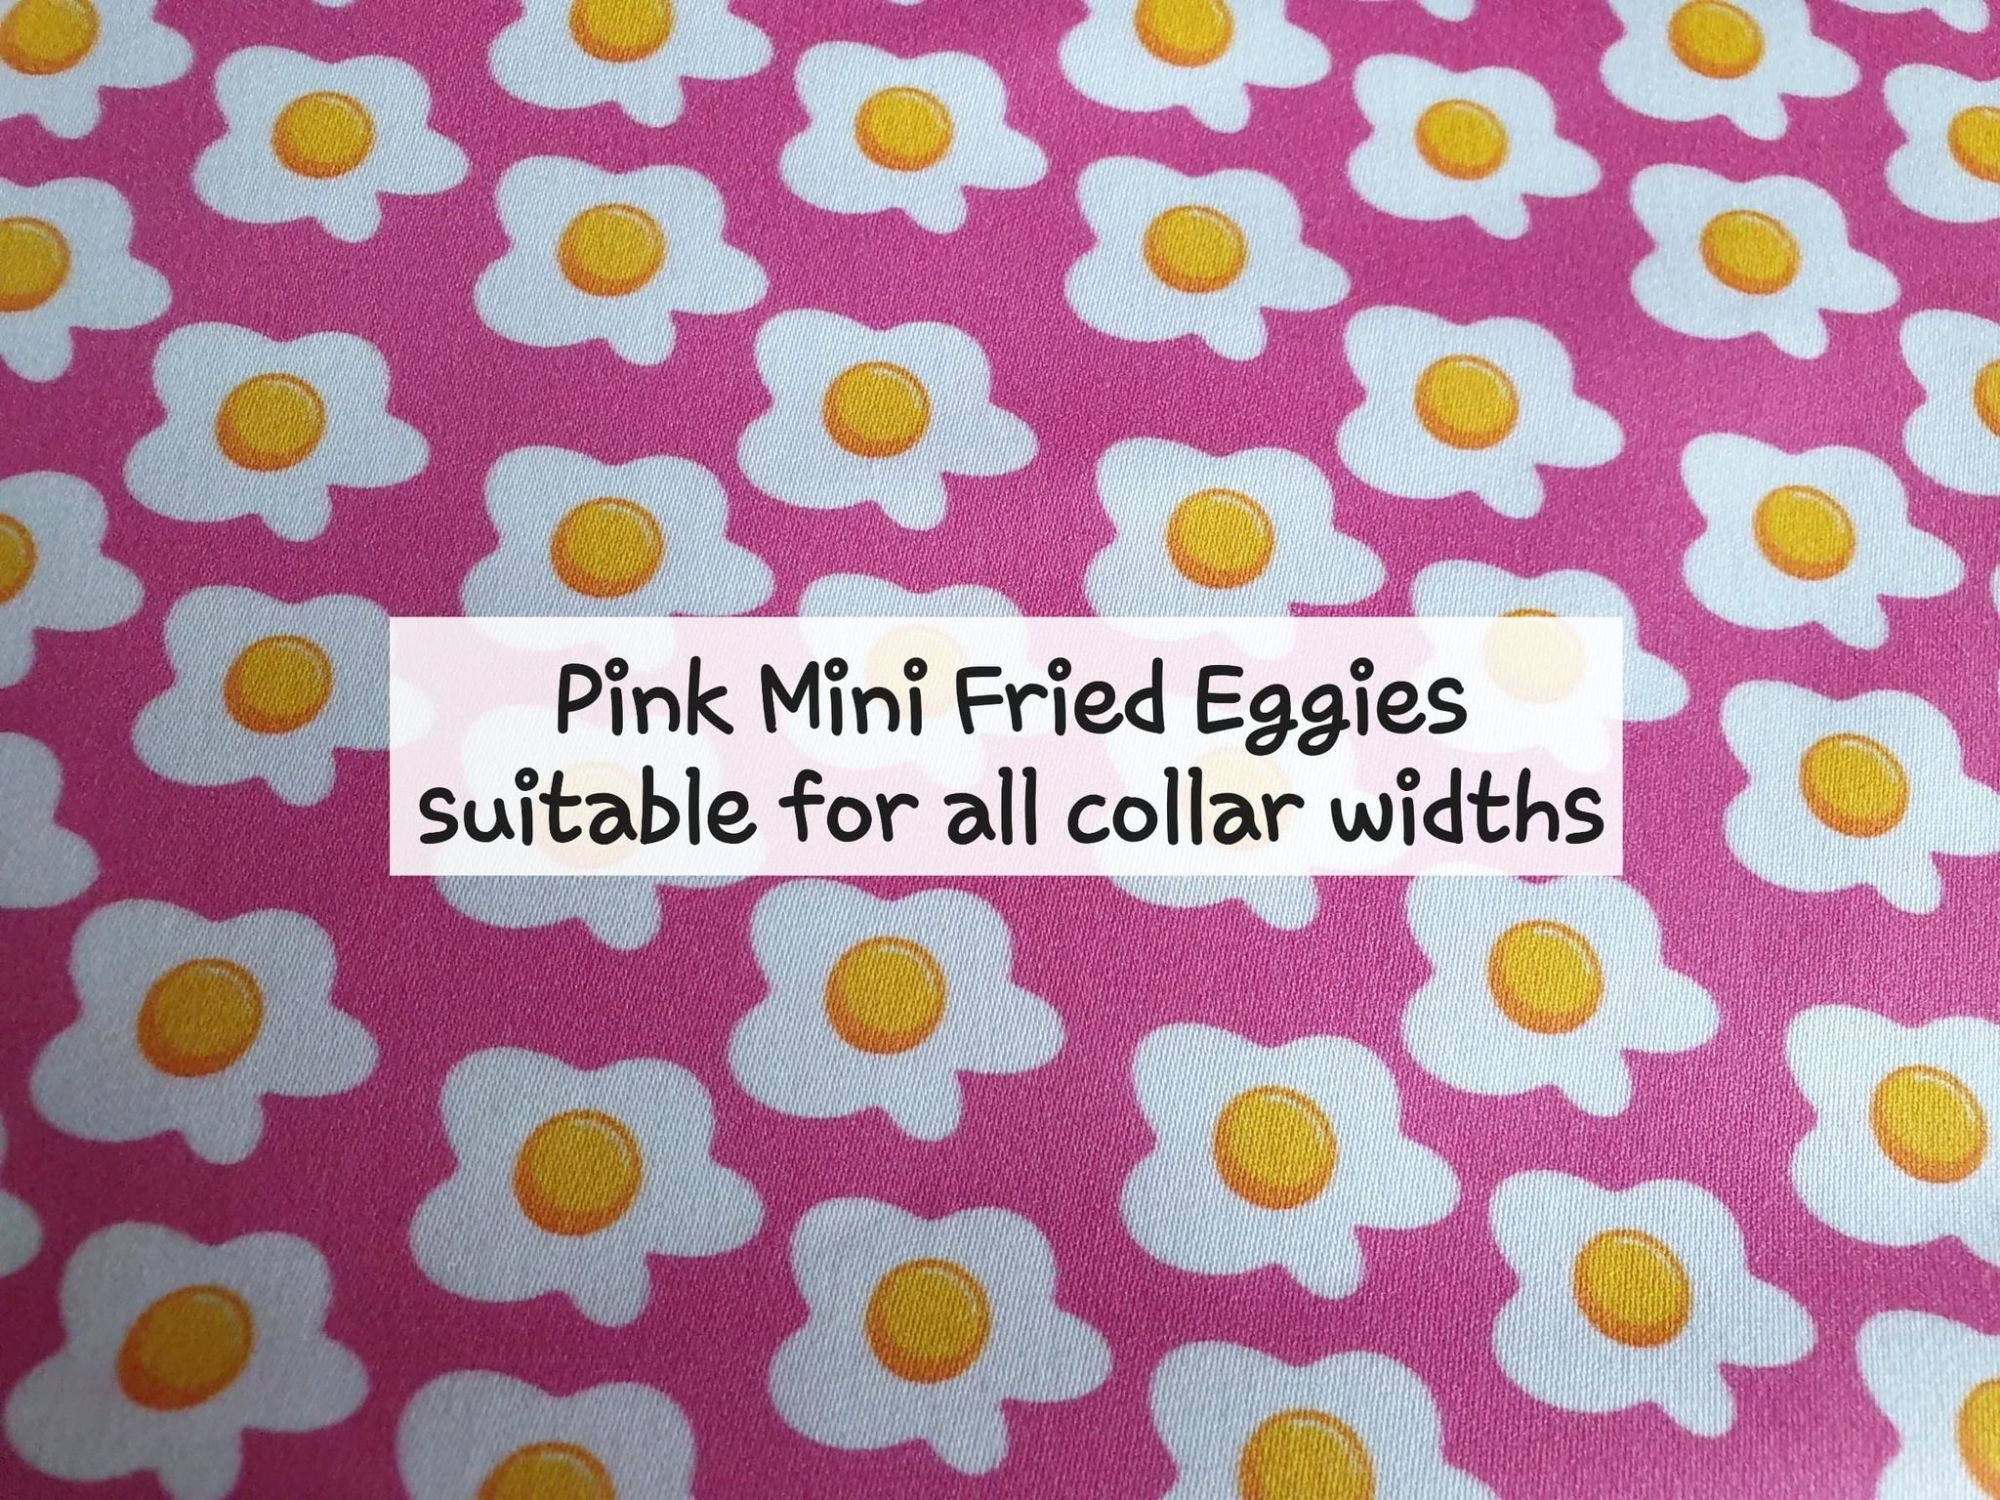 Pink Mini Fried Eggies - Suitable for all collar widths